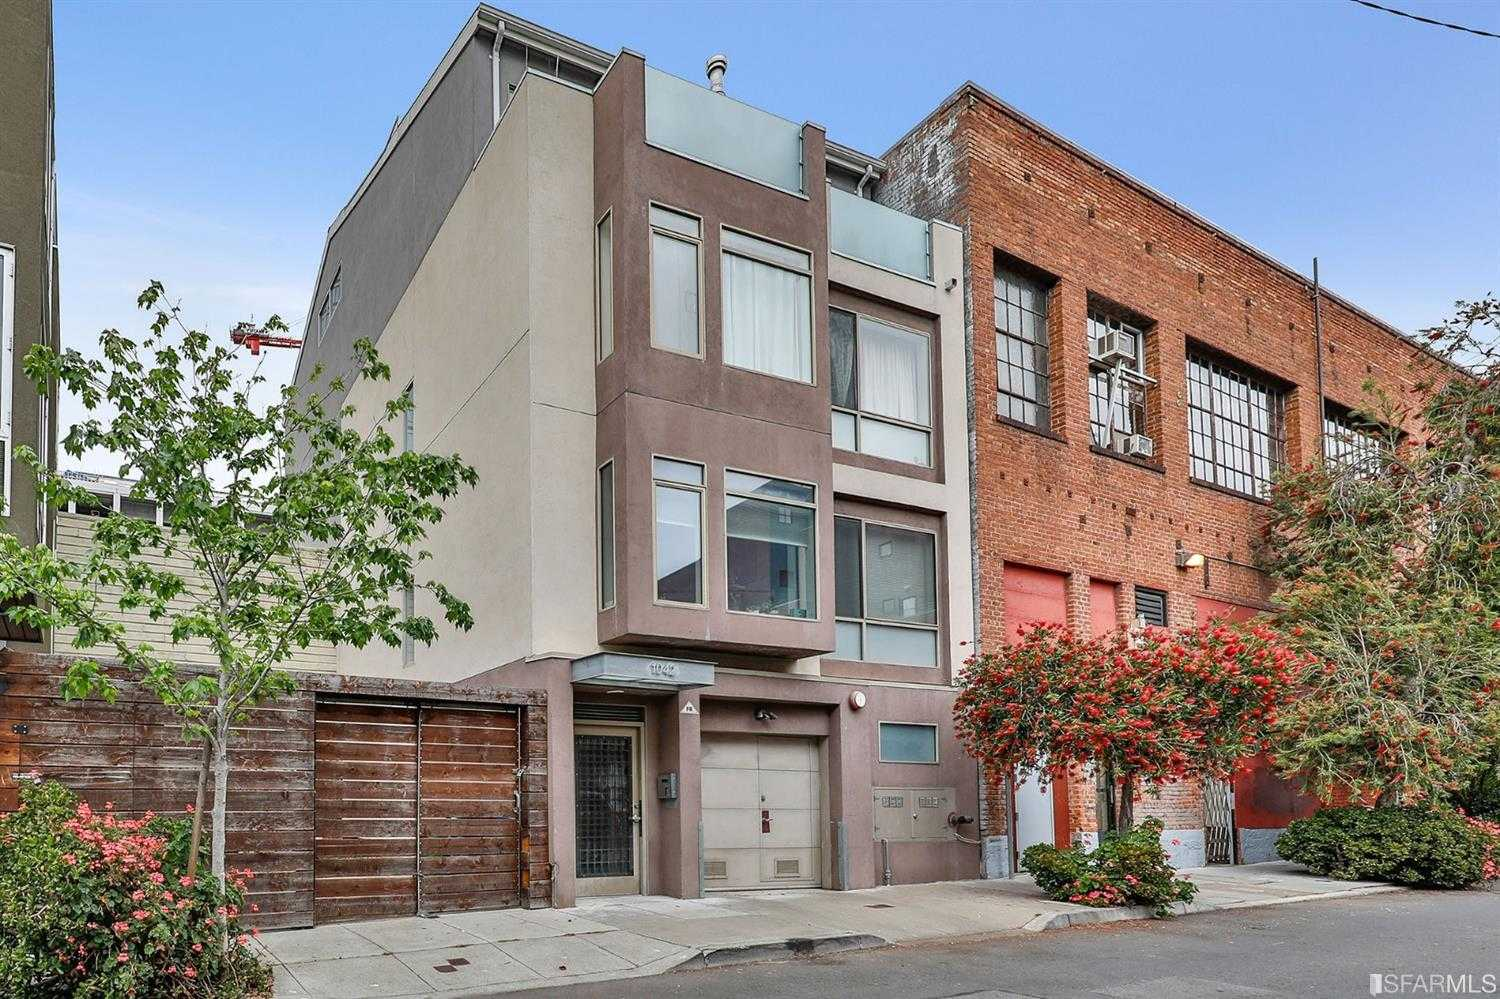 1042 Minna St Unit 2 San Francisco, CA 94103